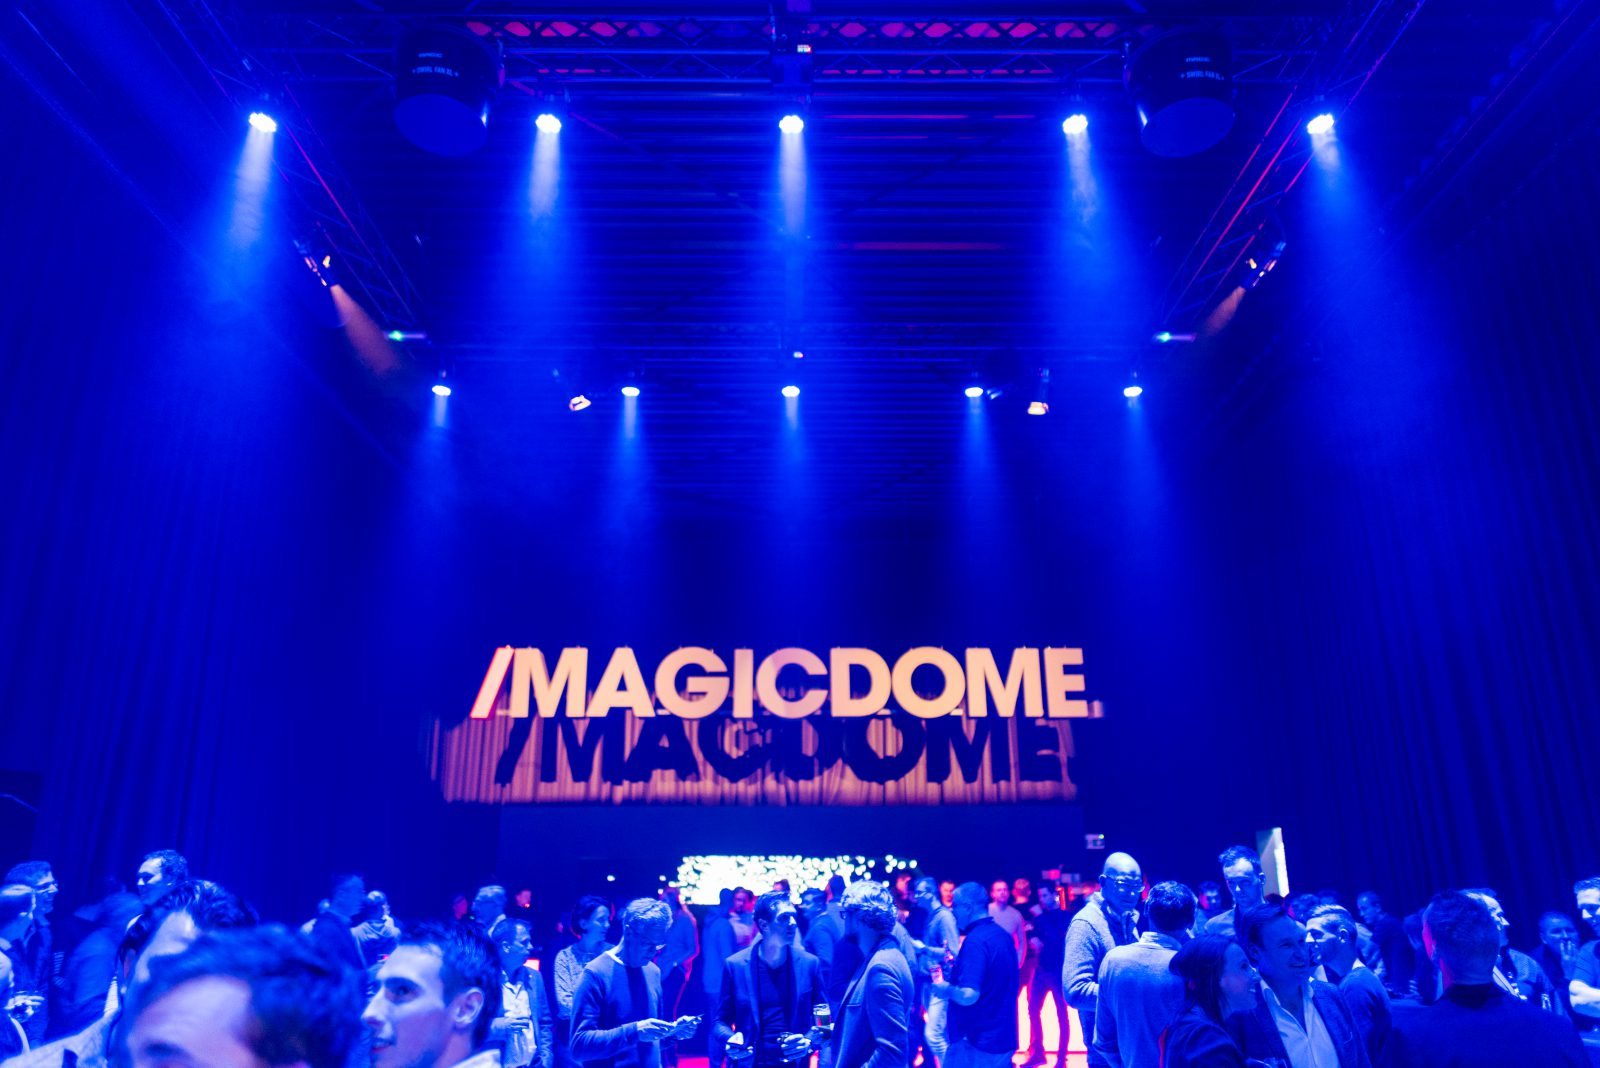 First Impression - Magic FX experience center The Magic Dome